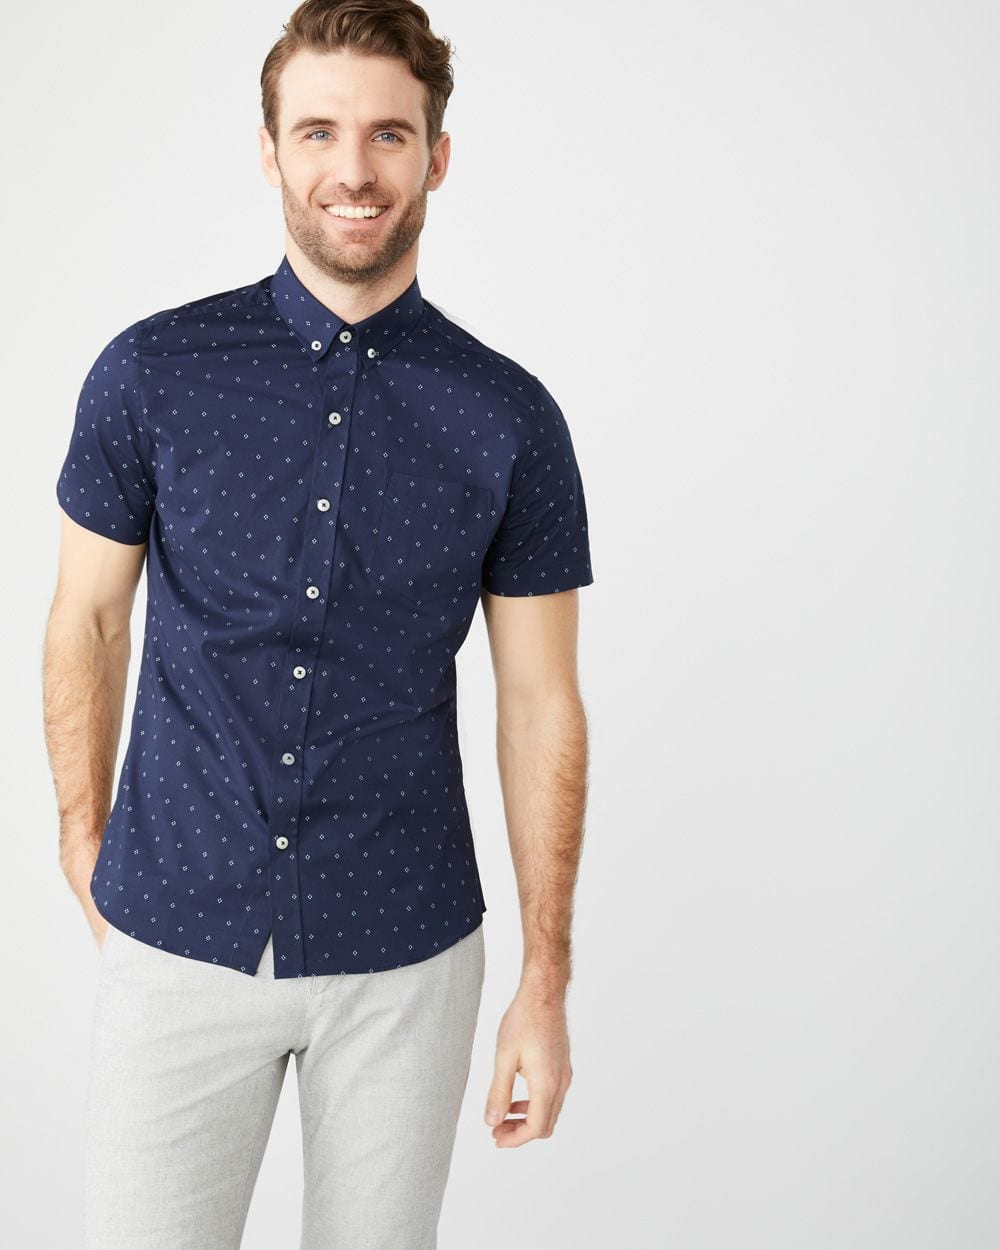 a52b9f7035 Slim Fit Short Sleeve stretch geo print Shirt